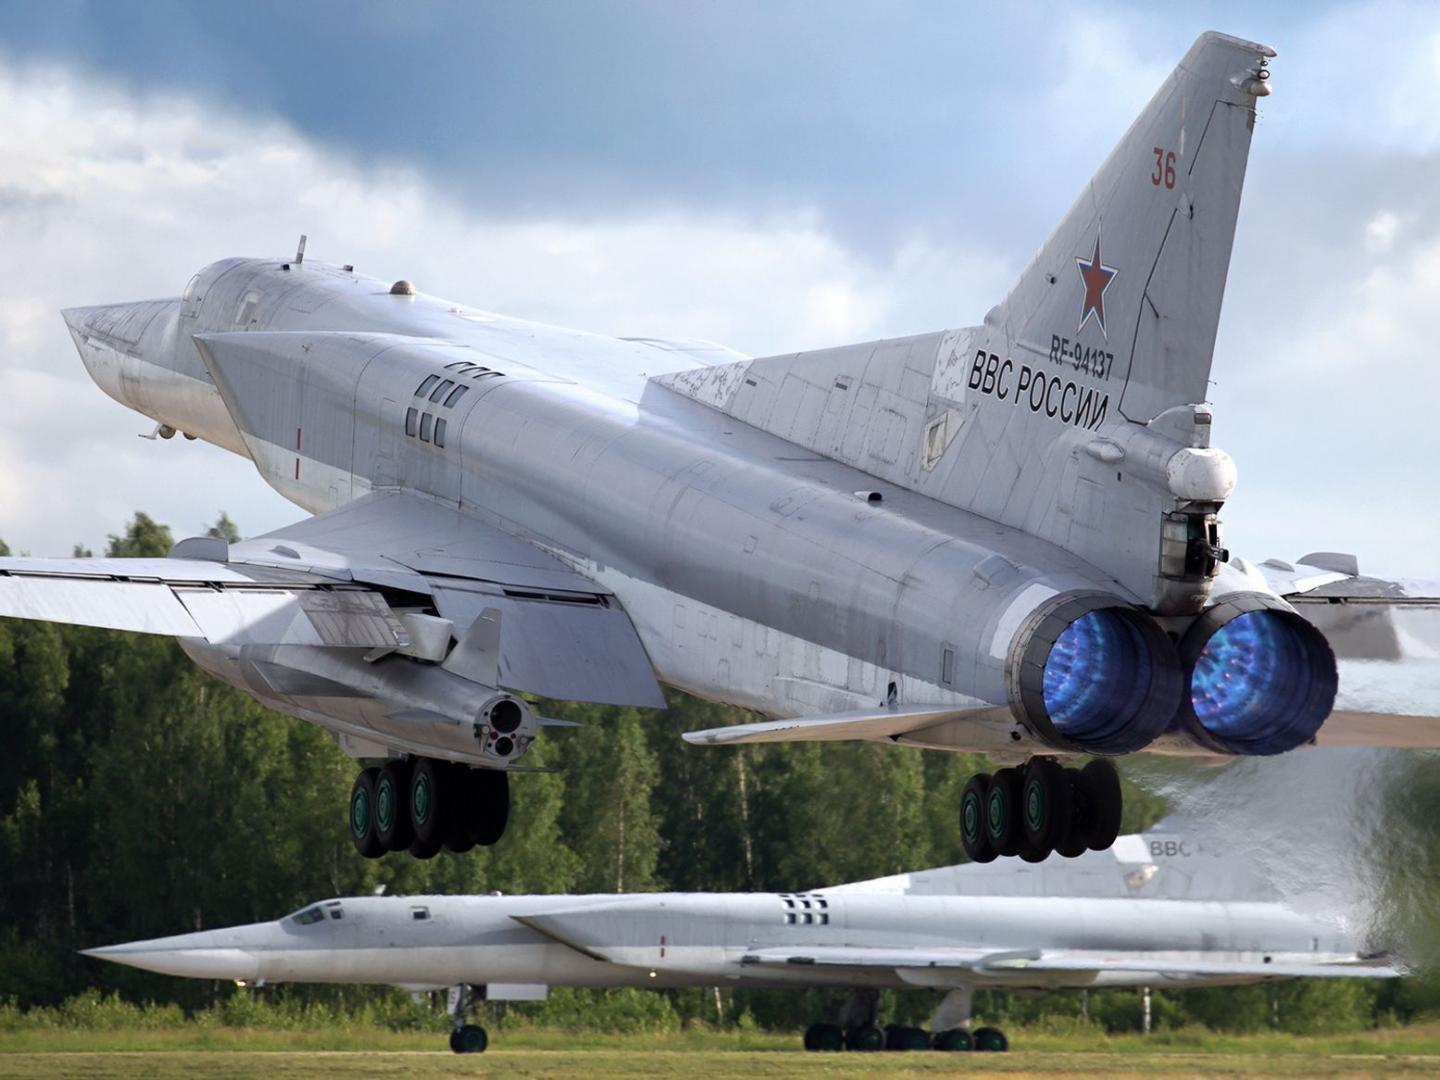 This Old Bomber from Russia Could Sink U.S. Navy Warships